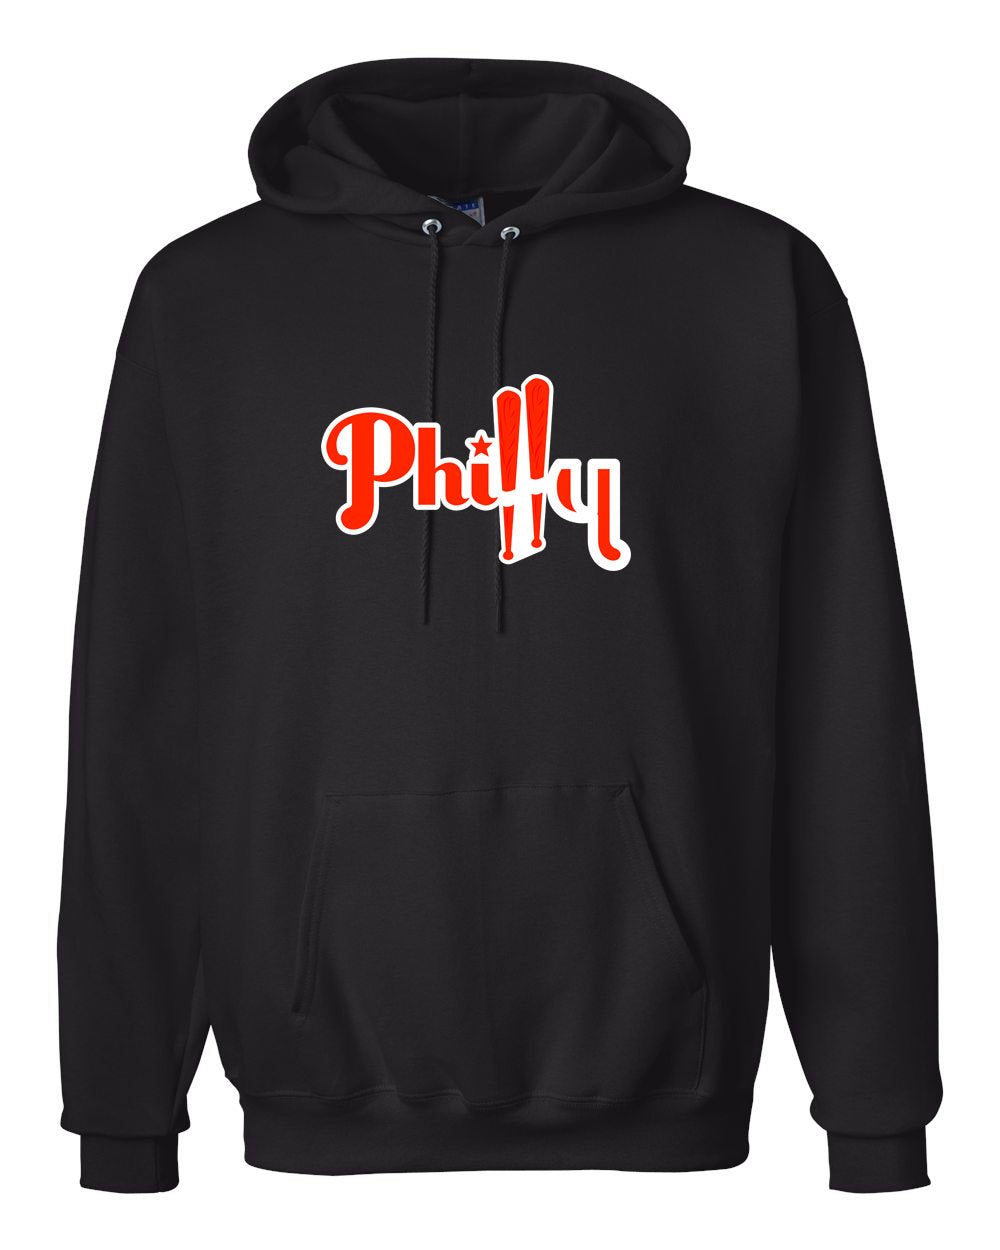 Philly Baseball Hoodie